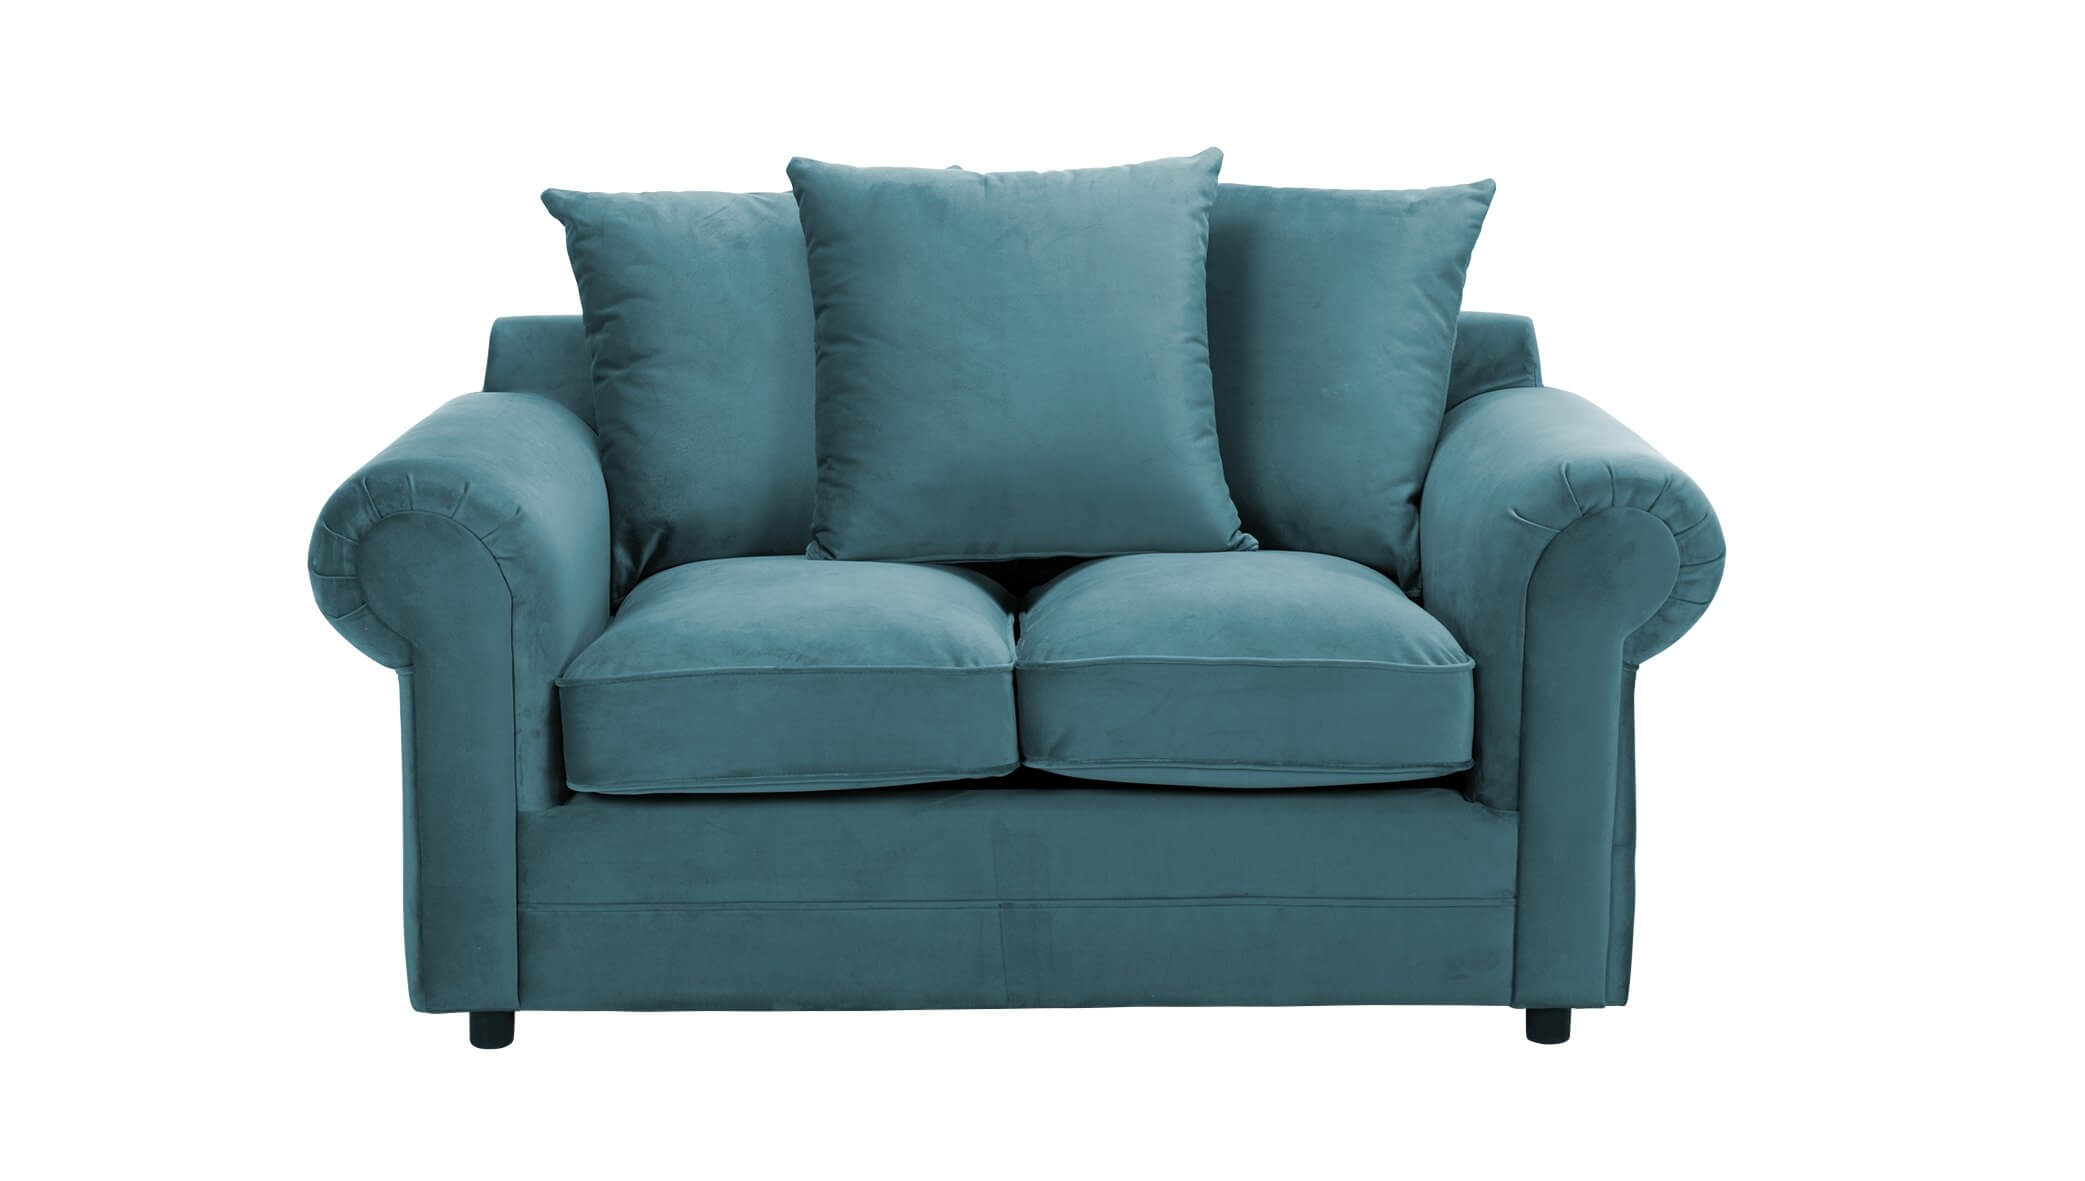 Turquoise Velvet 2 Seater Charlotte Sofa With Scatter Cushions